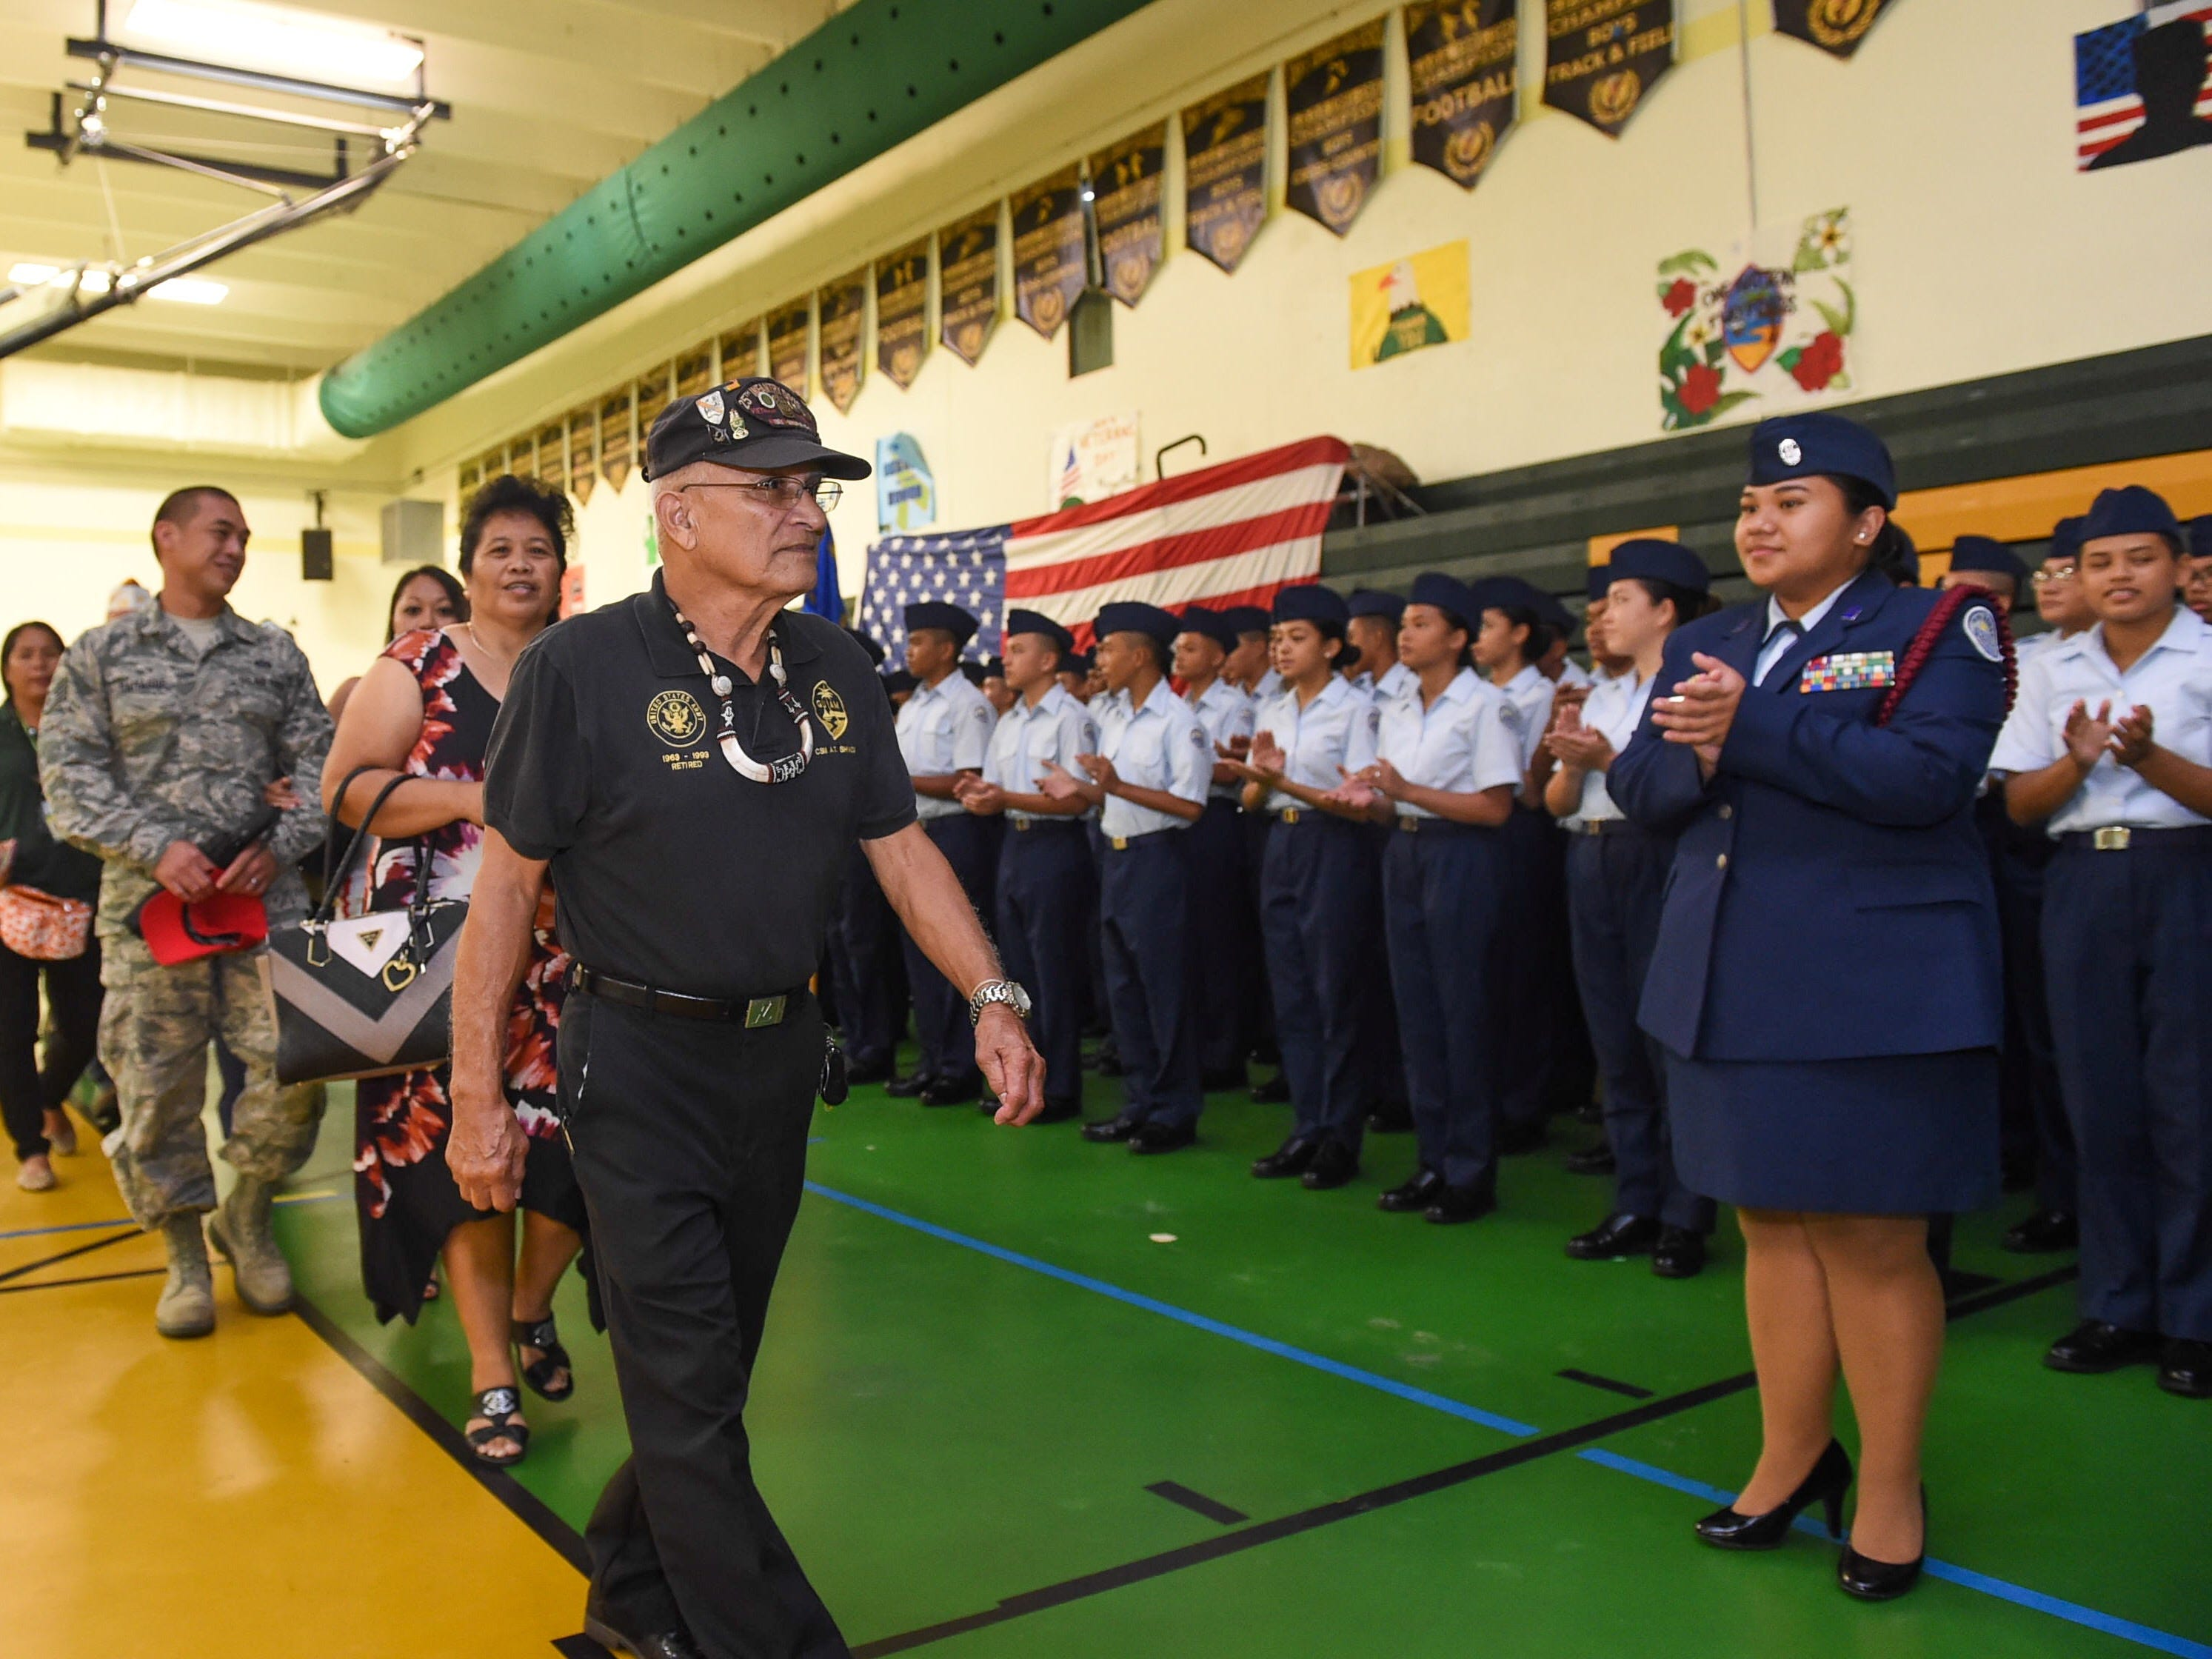 Veterans and guests parade into the gym for the John F. Kennedy High School Veterans Recognition Ceremony held on Friday, Nov. 9, 2018. JFK's Air Force Junior ROTC students coordinated the event ahead of  Sunday's Veterans Day.